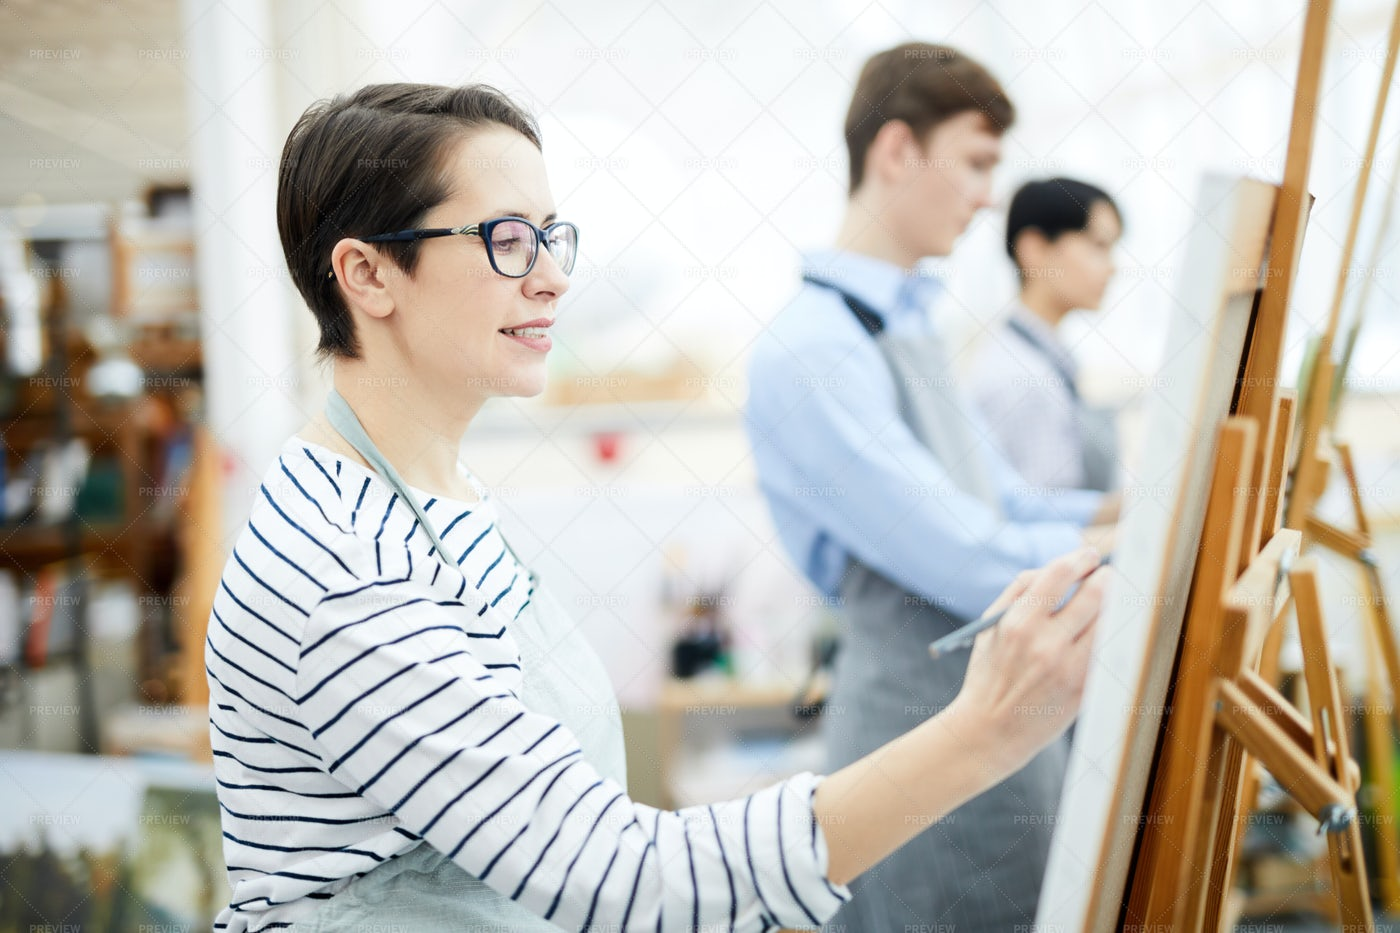 Woman Painting On Easel: Stock Photos